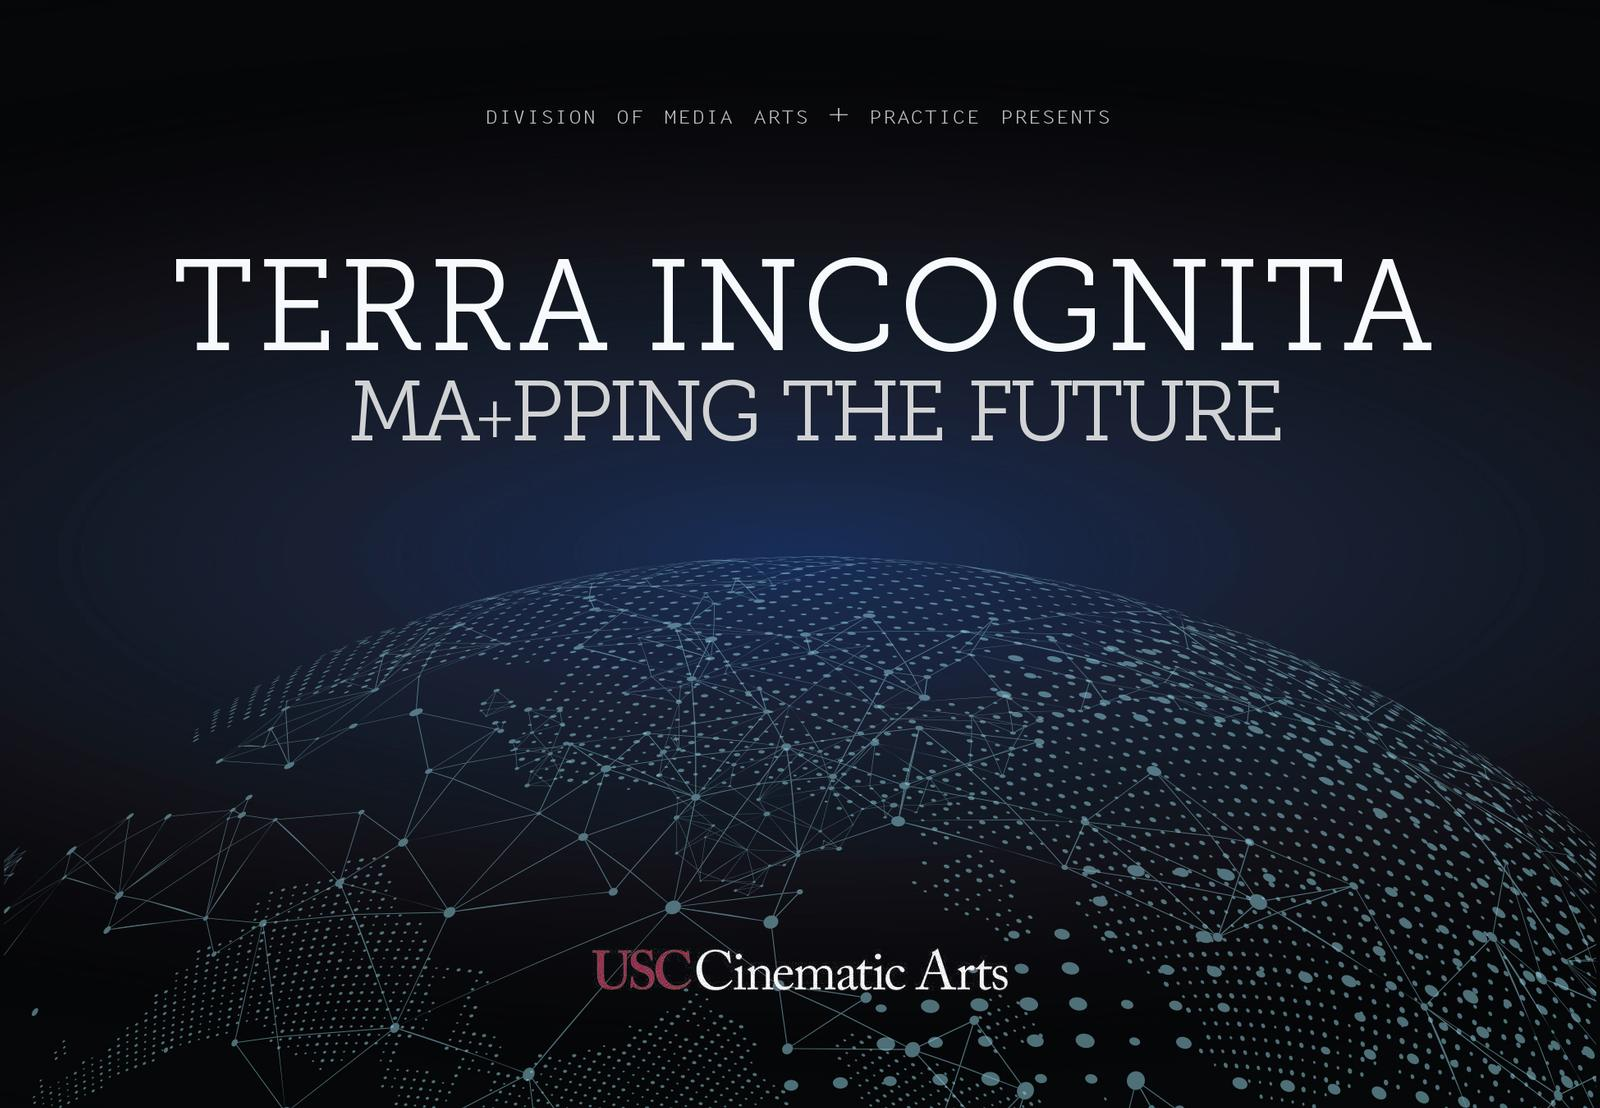 TERRA INCOGNITA: MA+PPING THE FUTURE is an exhibition of capstone projects created by senior undergraduate students in the BA in Media Arts + Practice and ...